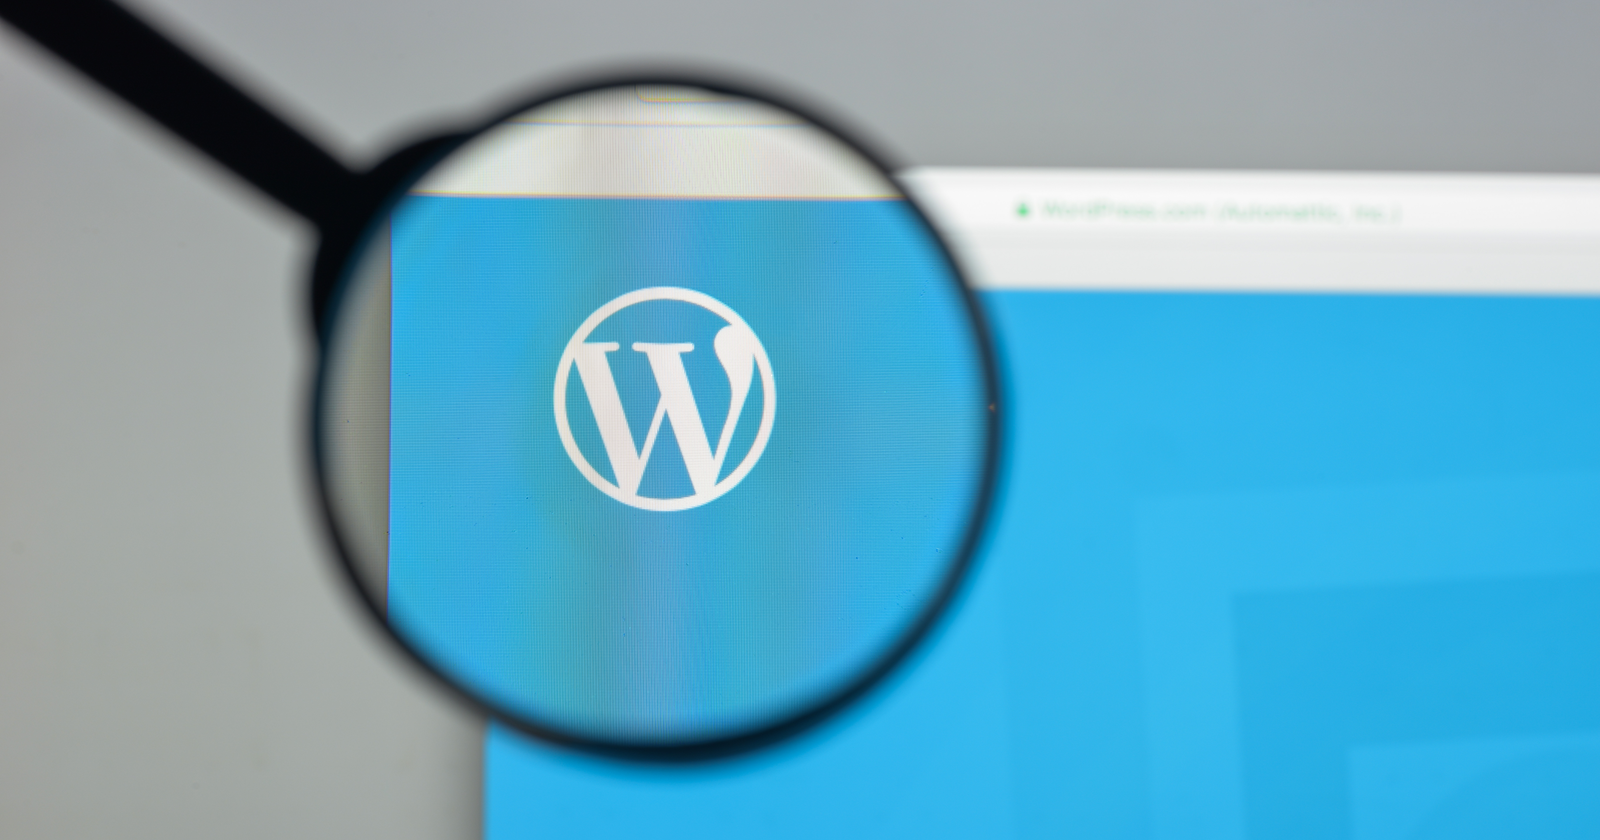 3 google analytics plugins for wordpress that can boost your business analysis 5eb54525084c0